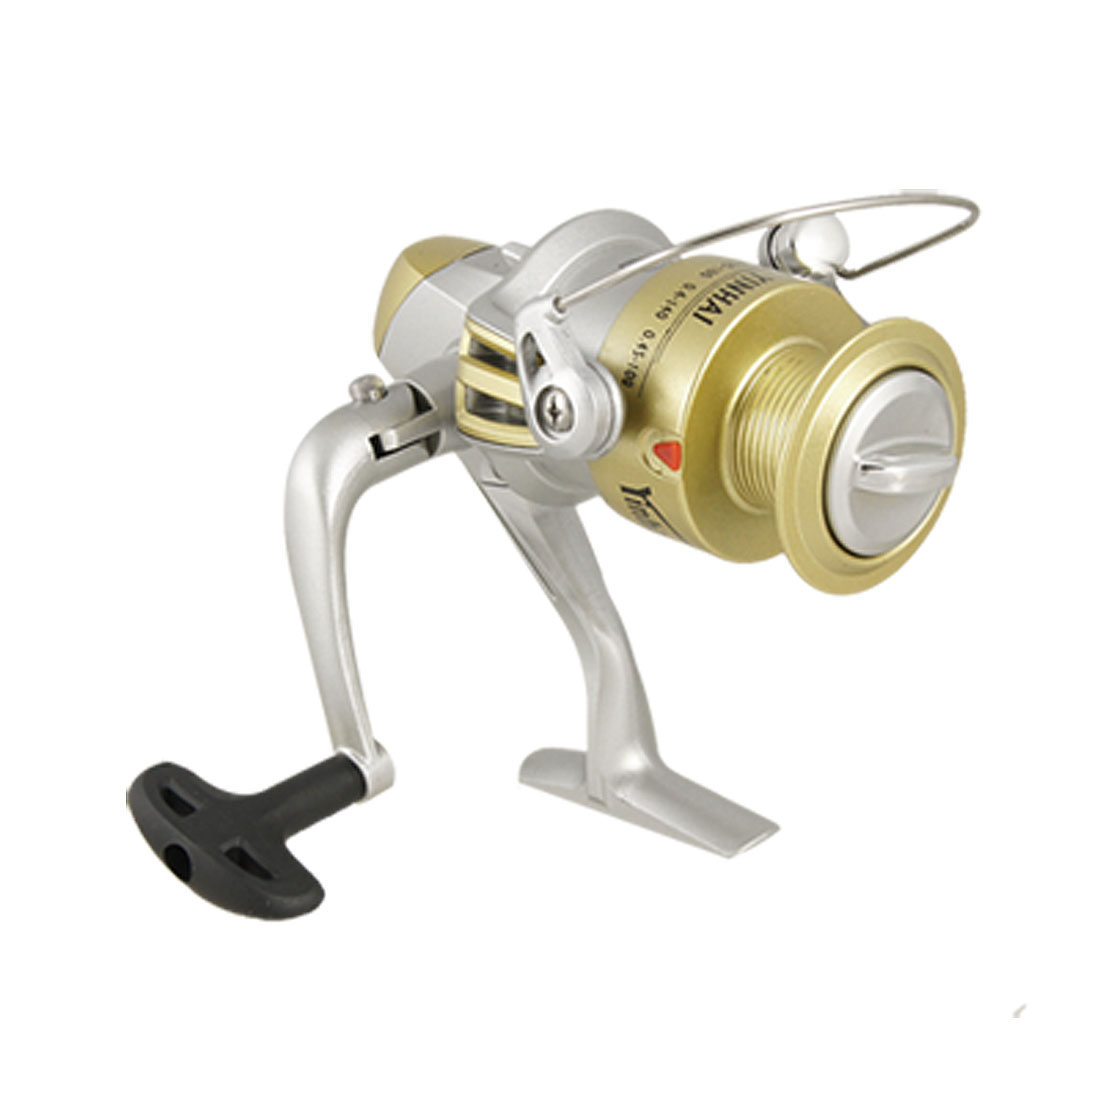 5.5:1 Gear Ratio 3 Ball Bearings Line Winder Fishing Spinning Reel